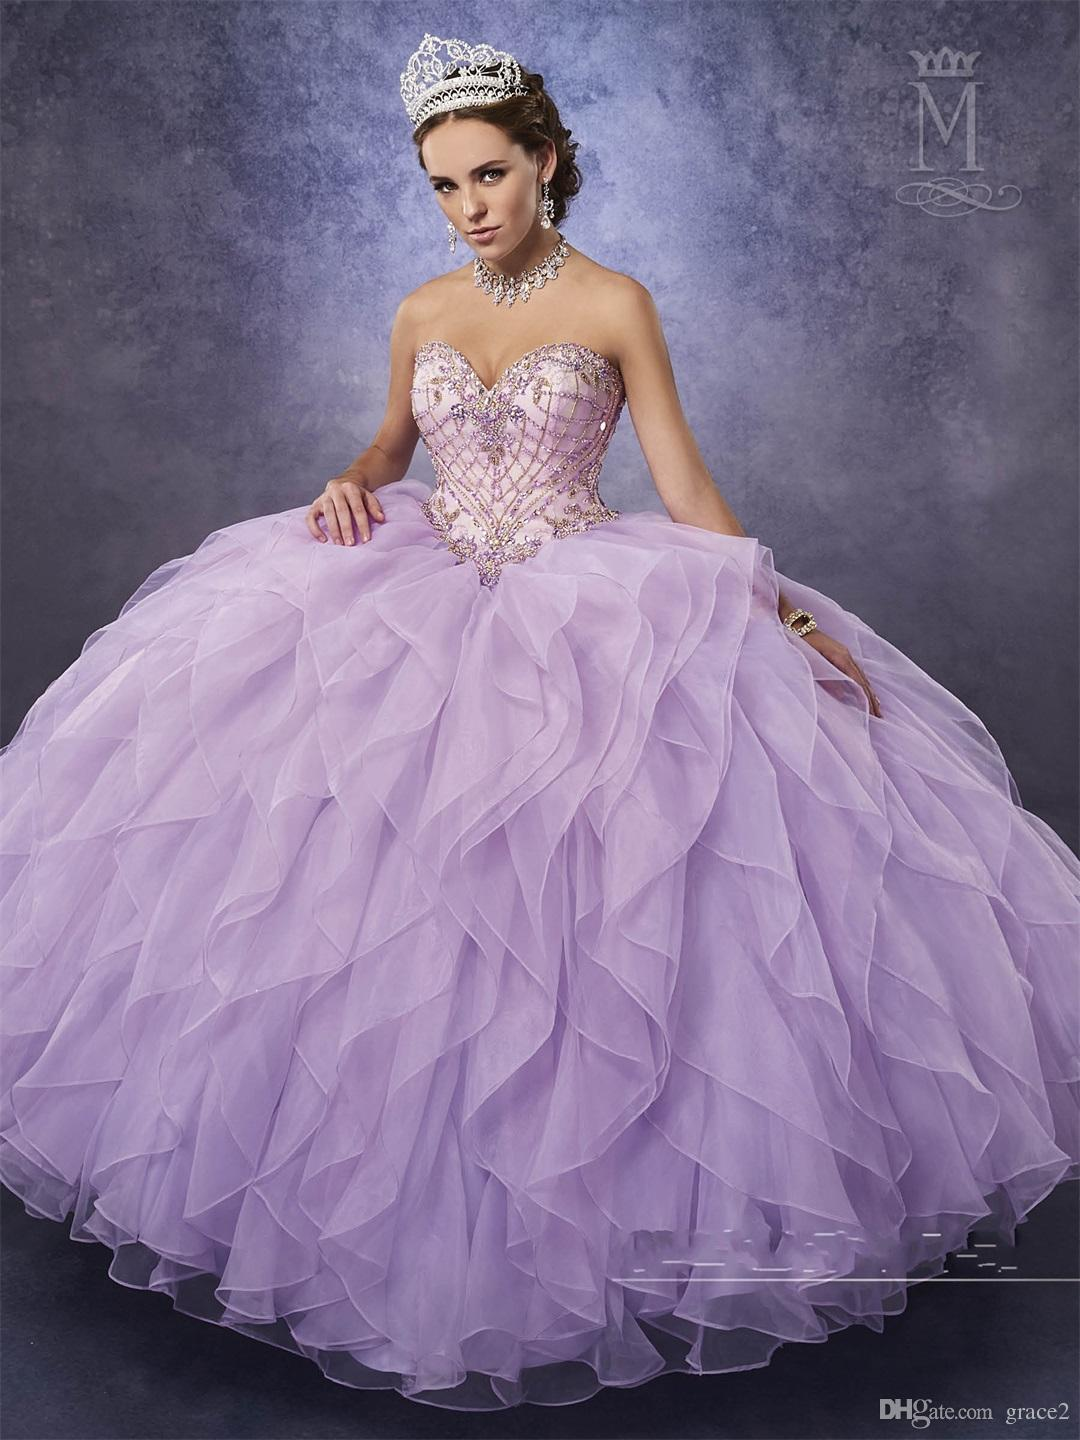 Lilac Quinceanera Dresses 2017 Mary S With Detachable Illusion Top And  Organza Ruffle Skirt Aqua Vestidos De 15 Anos Major Beading Inexpensive  Quinceanera ... bc2958ab4e8e